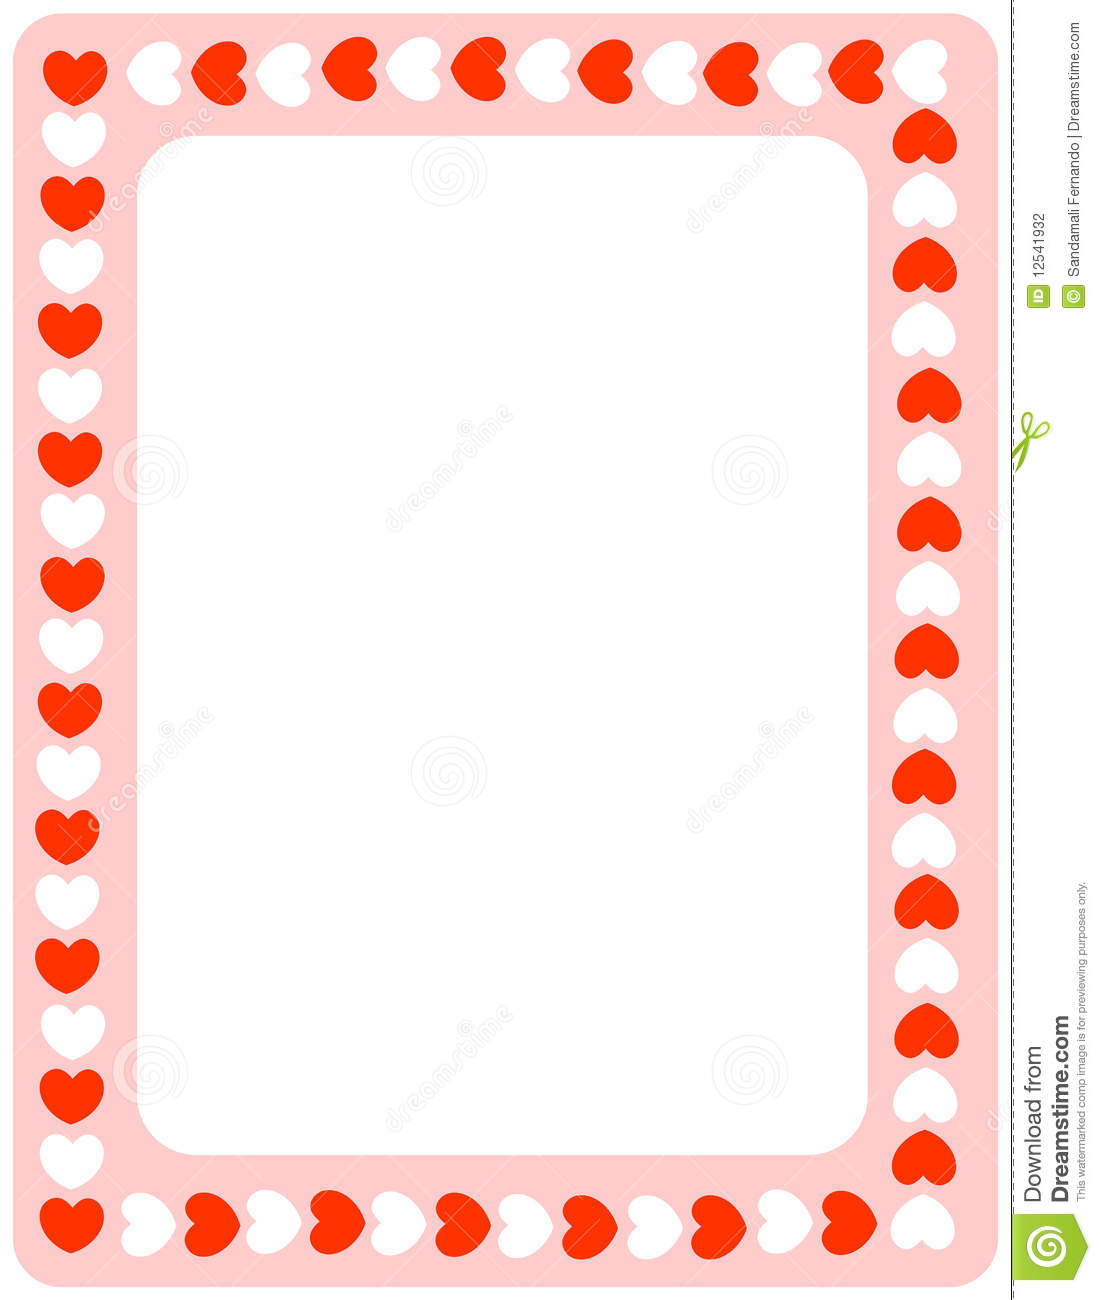 Valentine Heart Border Clipart Red Heart-Valentine Heart Border Clipart Red Hearts Valentines Day-6